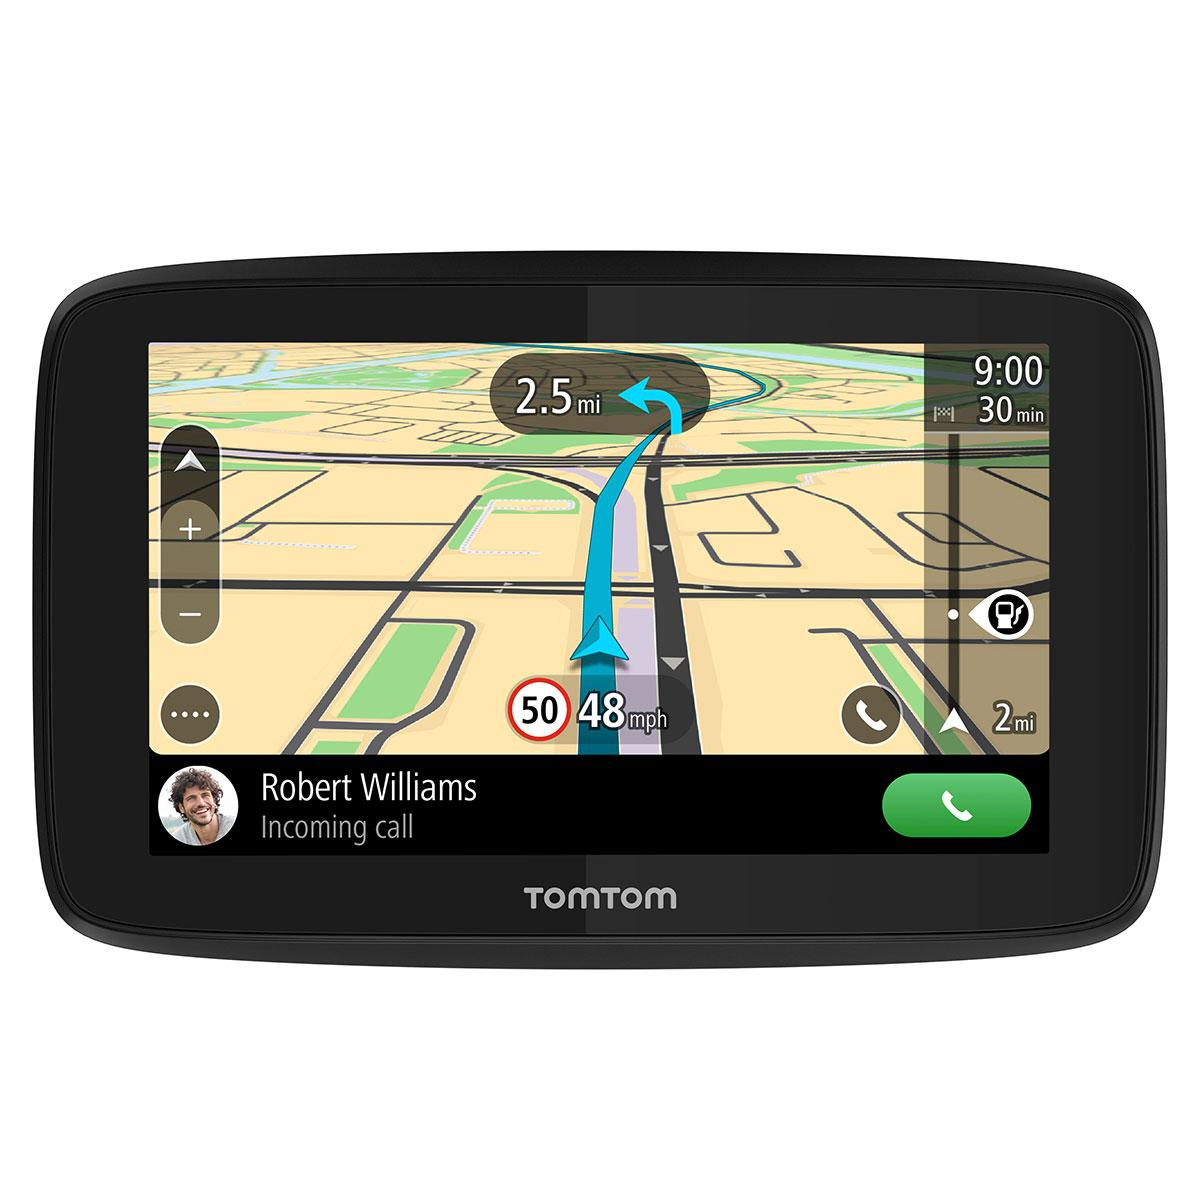 Updates: TomTom GO Professional 6200 With Updates Via WI-FI